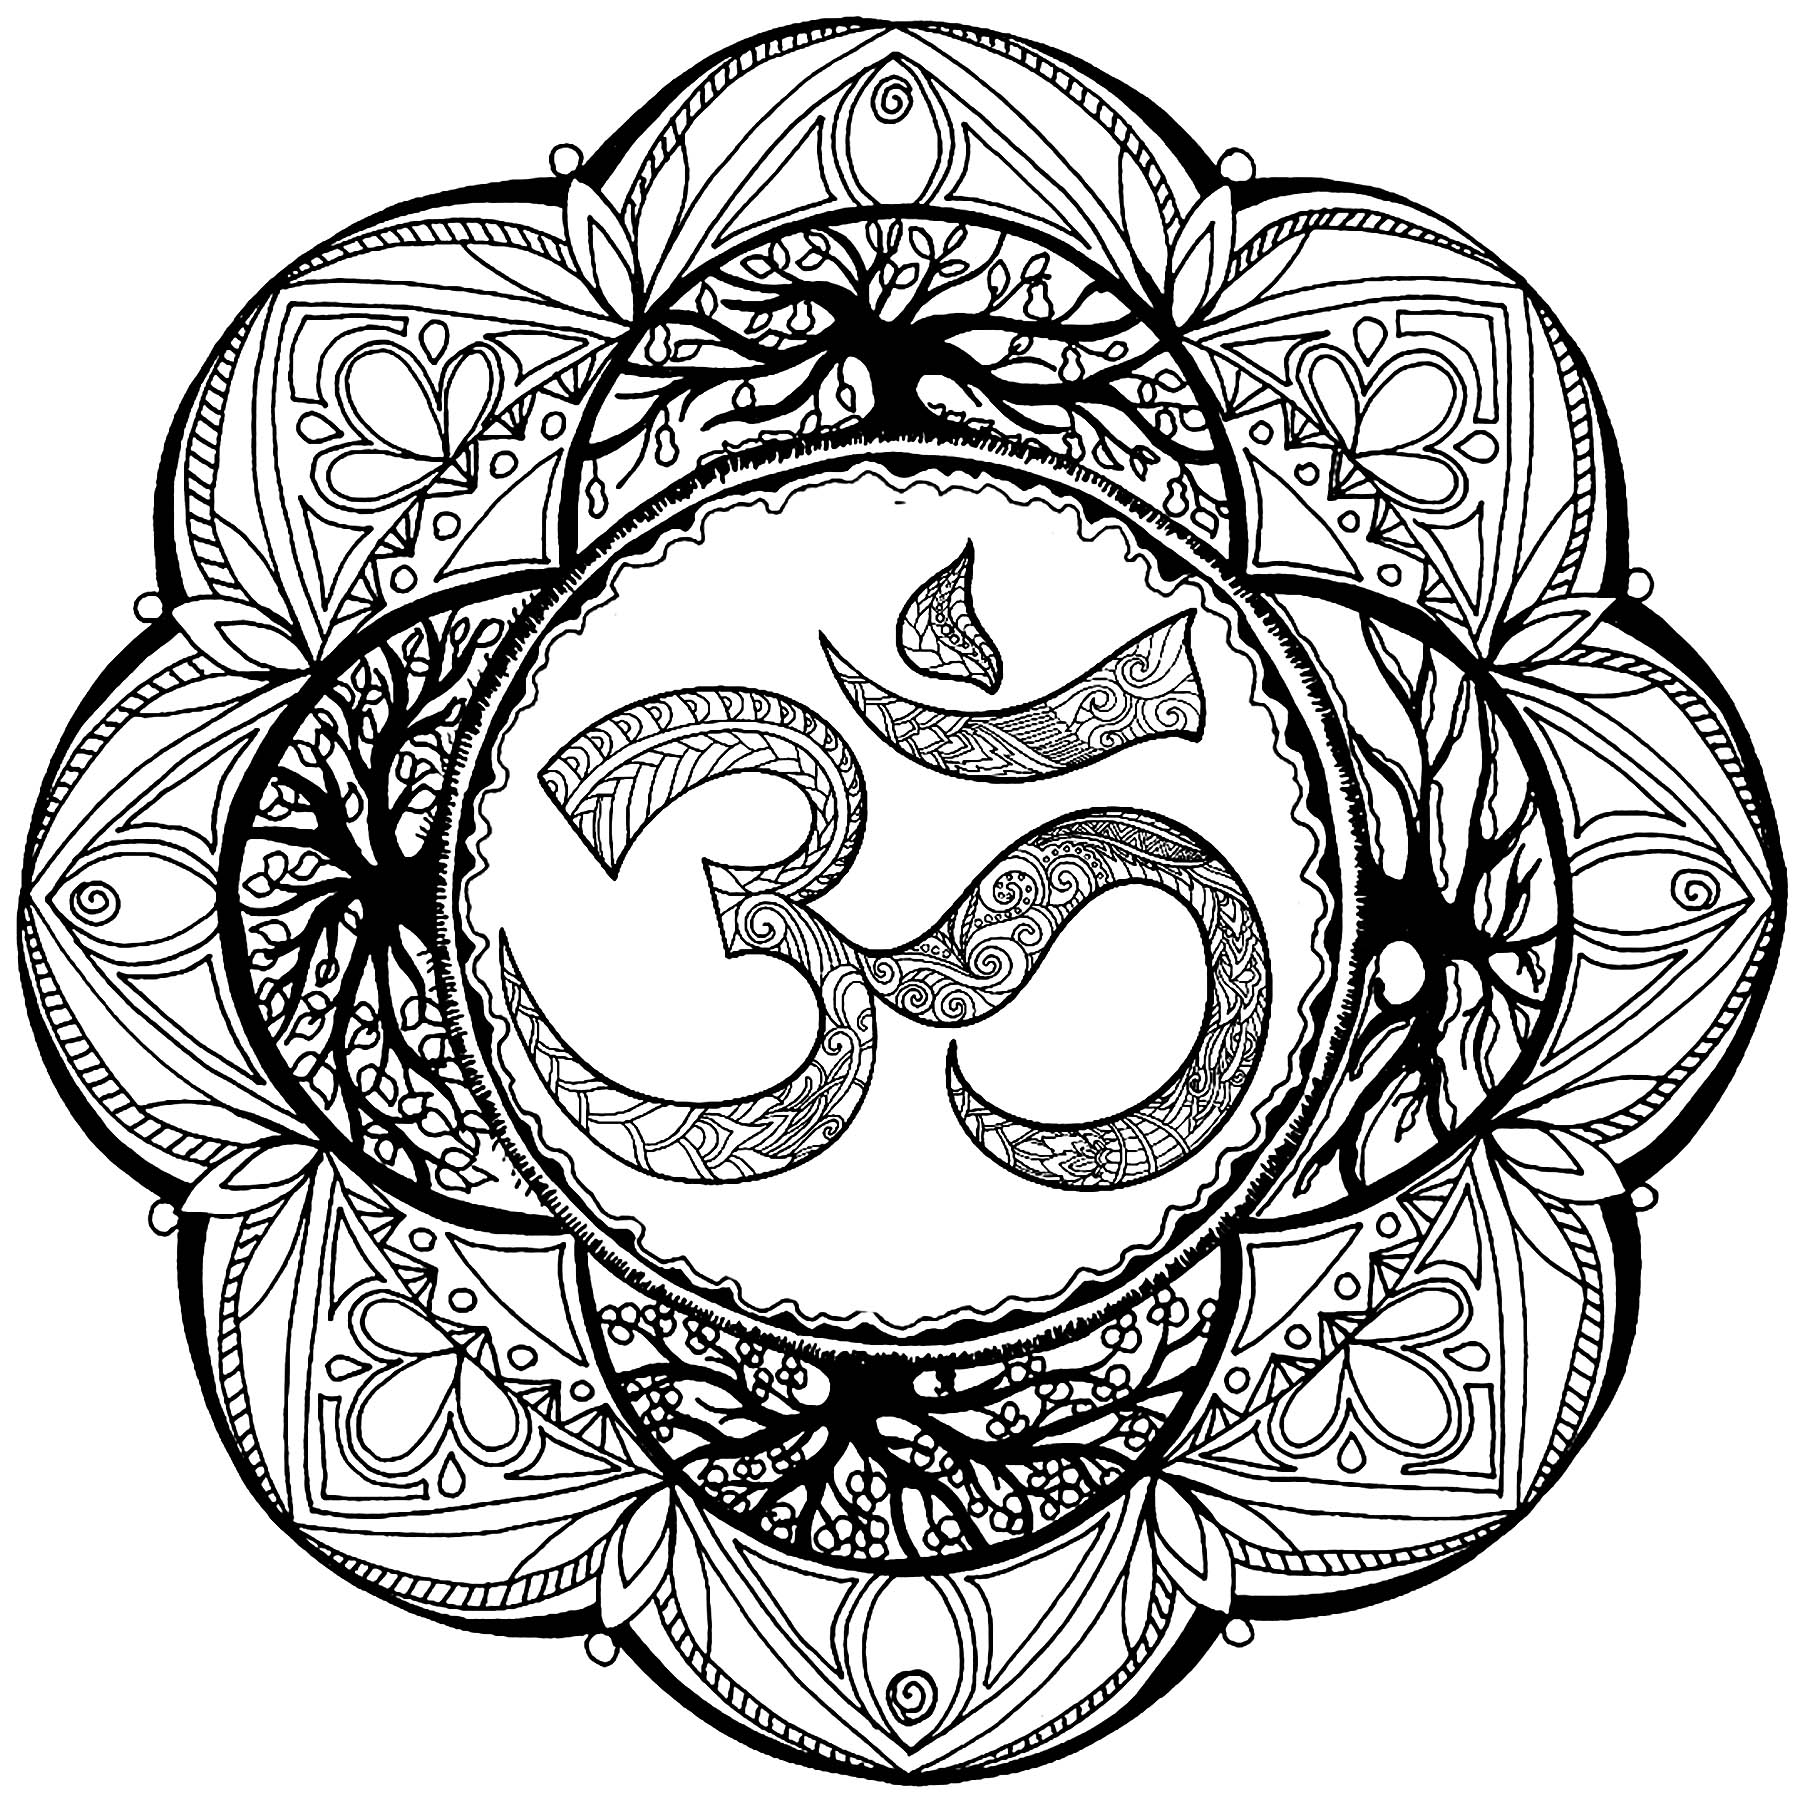 Om symbol in a plex Mandala M alas Adult Coloring Pages